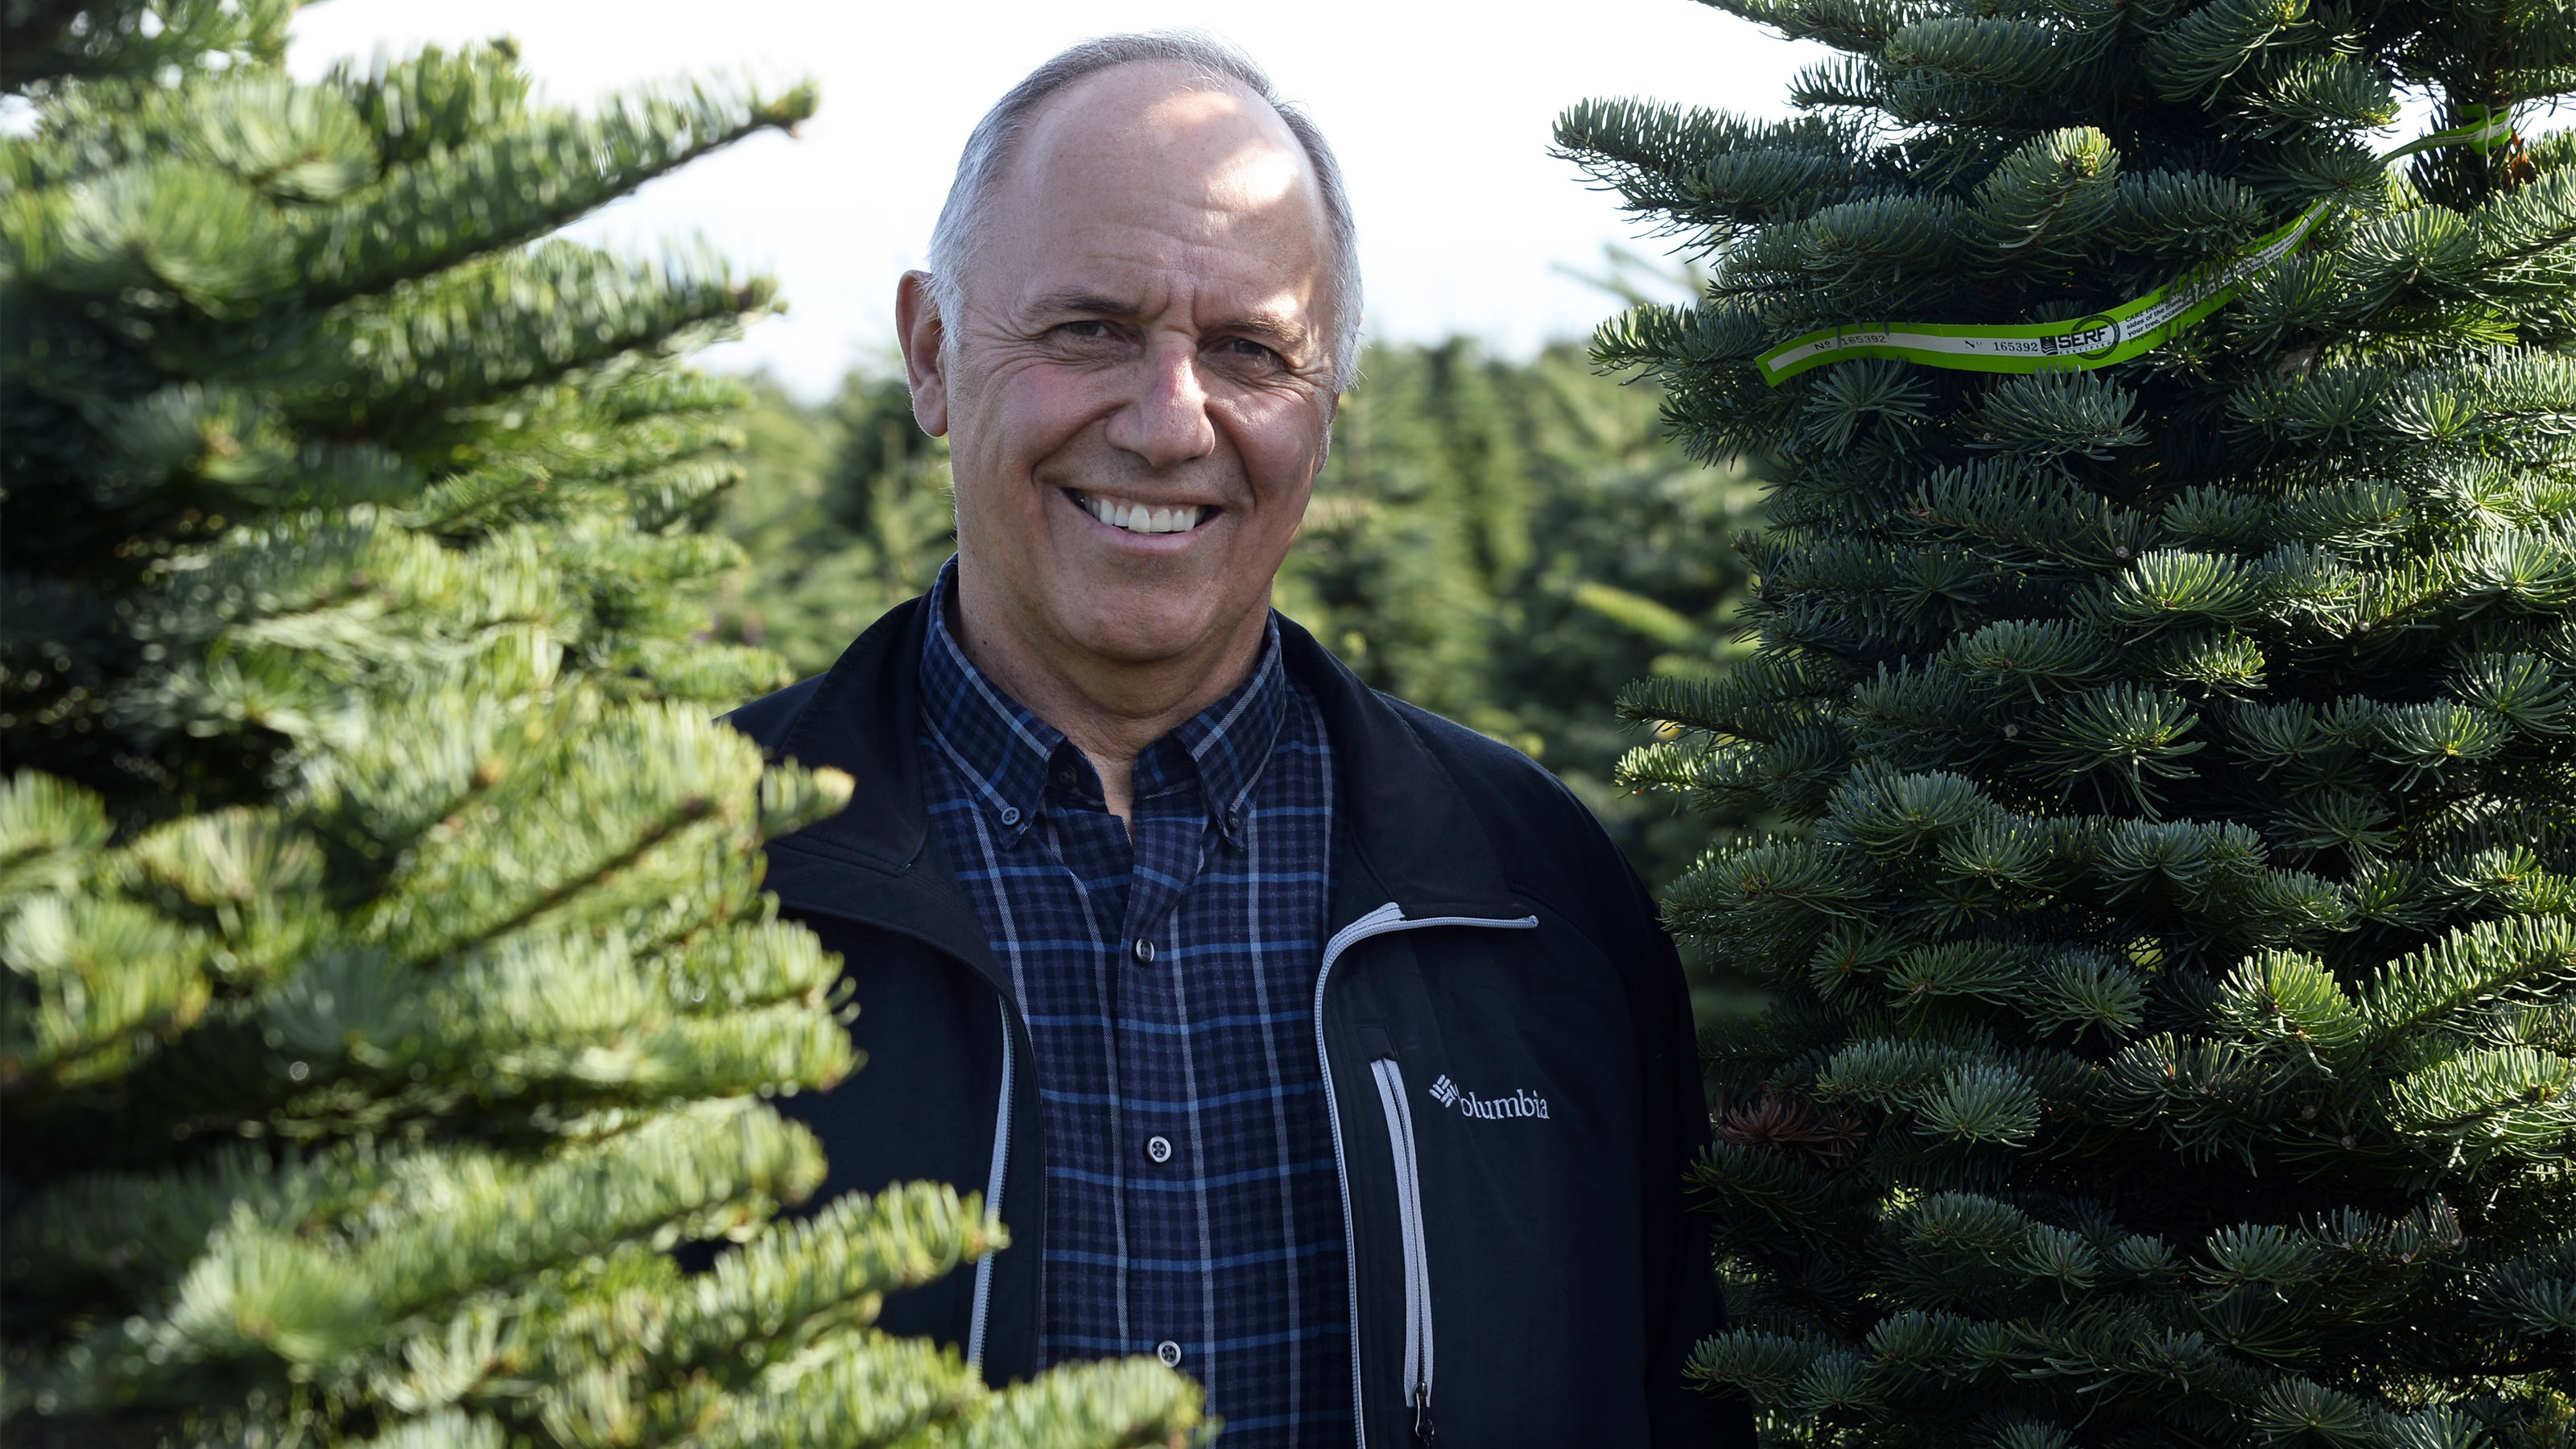 Noble Mountain Tree Farm's general manager and Rusty Pilot Bob Schaefer considers the tree farming firm's Noble, Douglas, and Nordmann fir trees as his 'babies.' Oregon's Christmas tree business accounts for more than $109 million in economic benefits to the state, according to a 2007 study. Photo by David Tulis.